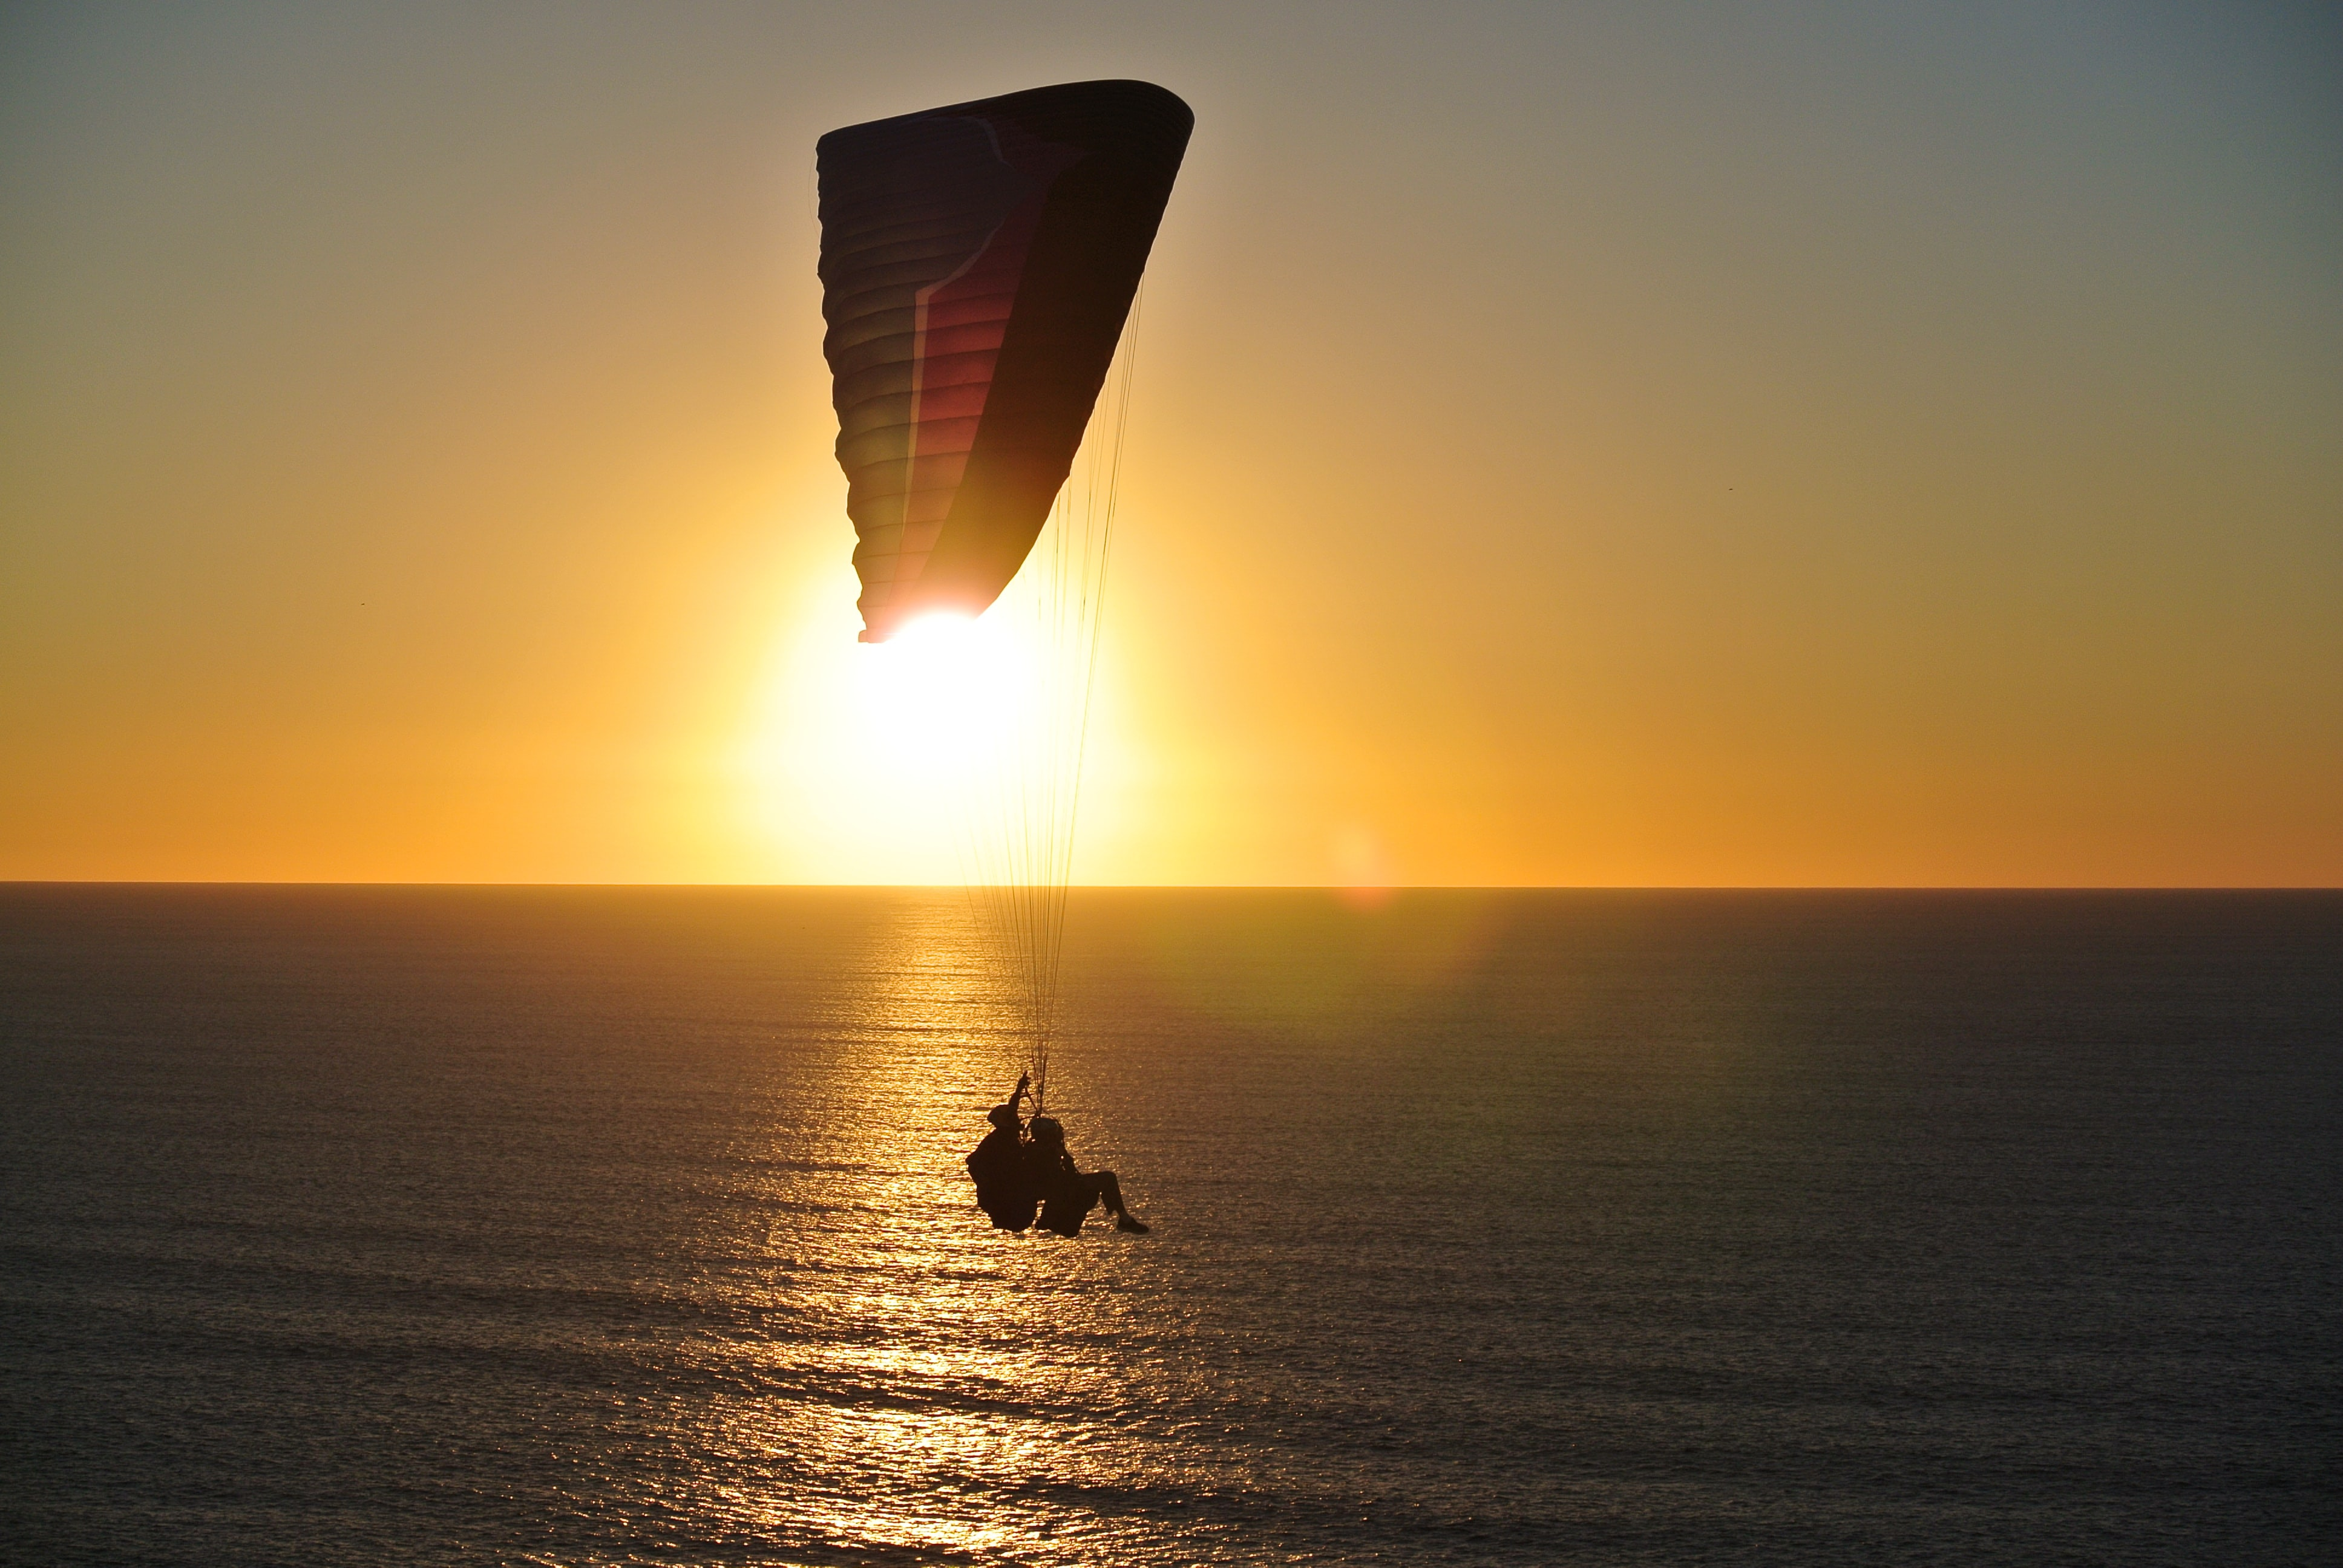 person in parachute above body of water during golden hour